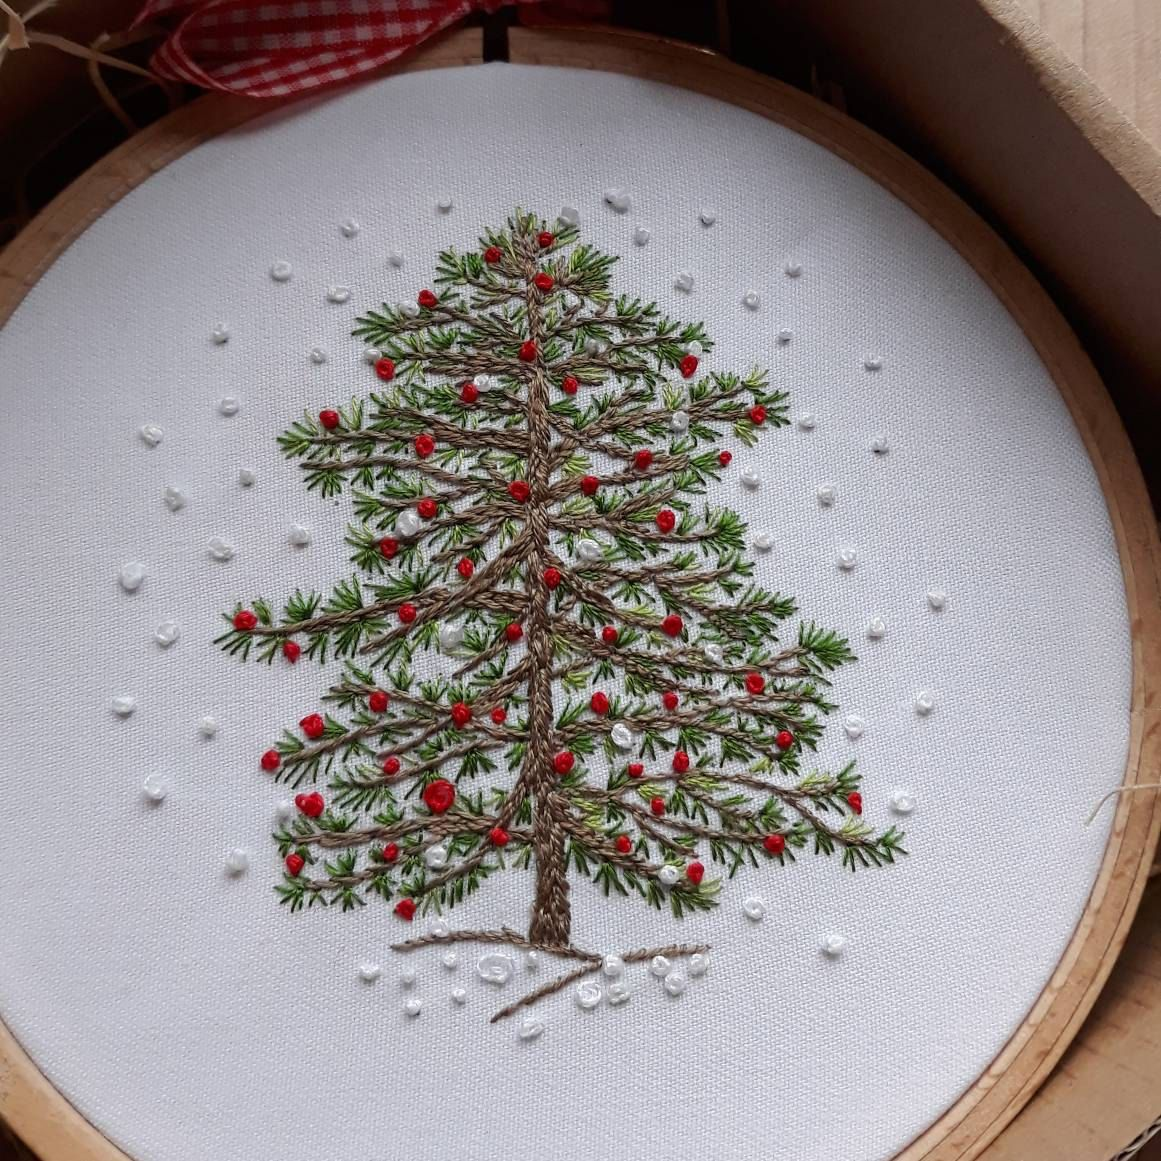 Christmas Tree Hand Embroidery Kit Winter Christmas Embroidery Christmas Diy Kit Diy Gift Christmas Hoop Art Christmas Decor Embroidery Hand Embroidery Kit Flower Embroidery Designs Embroidery Gifts